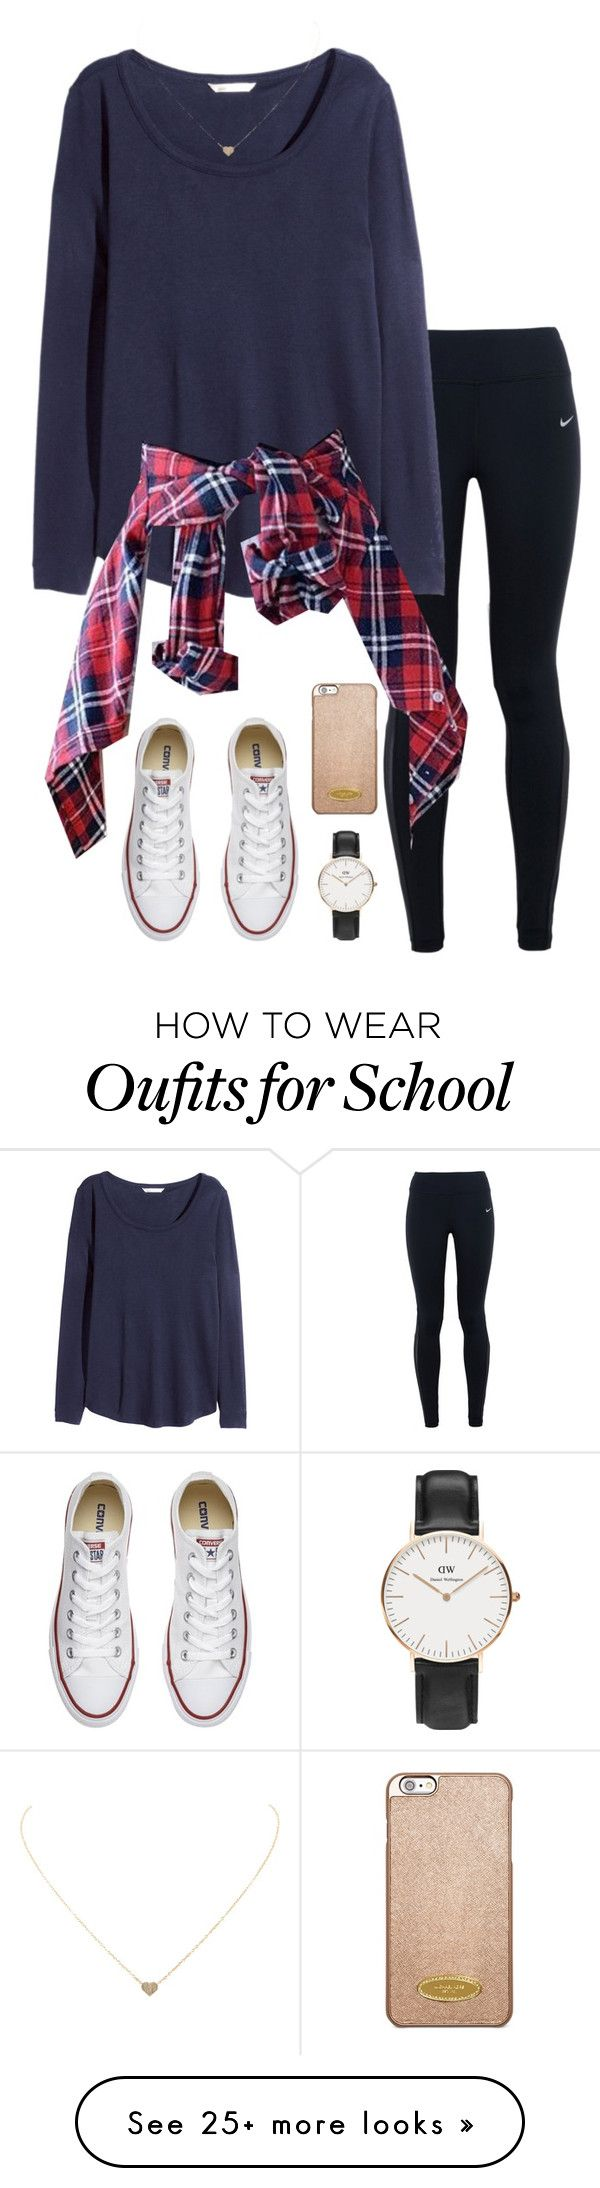 "I couldn't do the leggings but maybe black jeans- ""School today"" by ksarak on Polyvore featuring NIKE, H&M, Humble Chic, Daniel Wellington, Michael Kors and Converse"